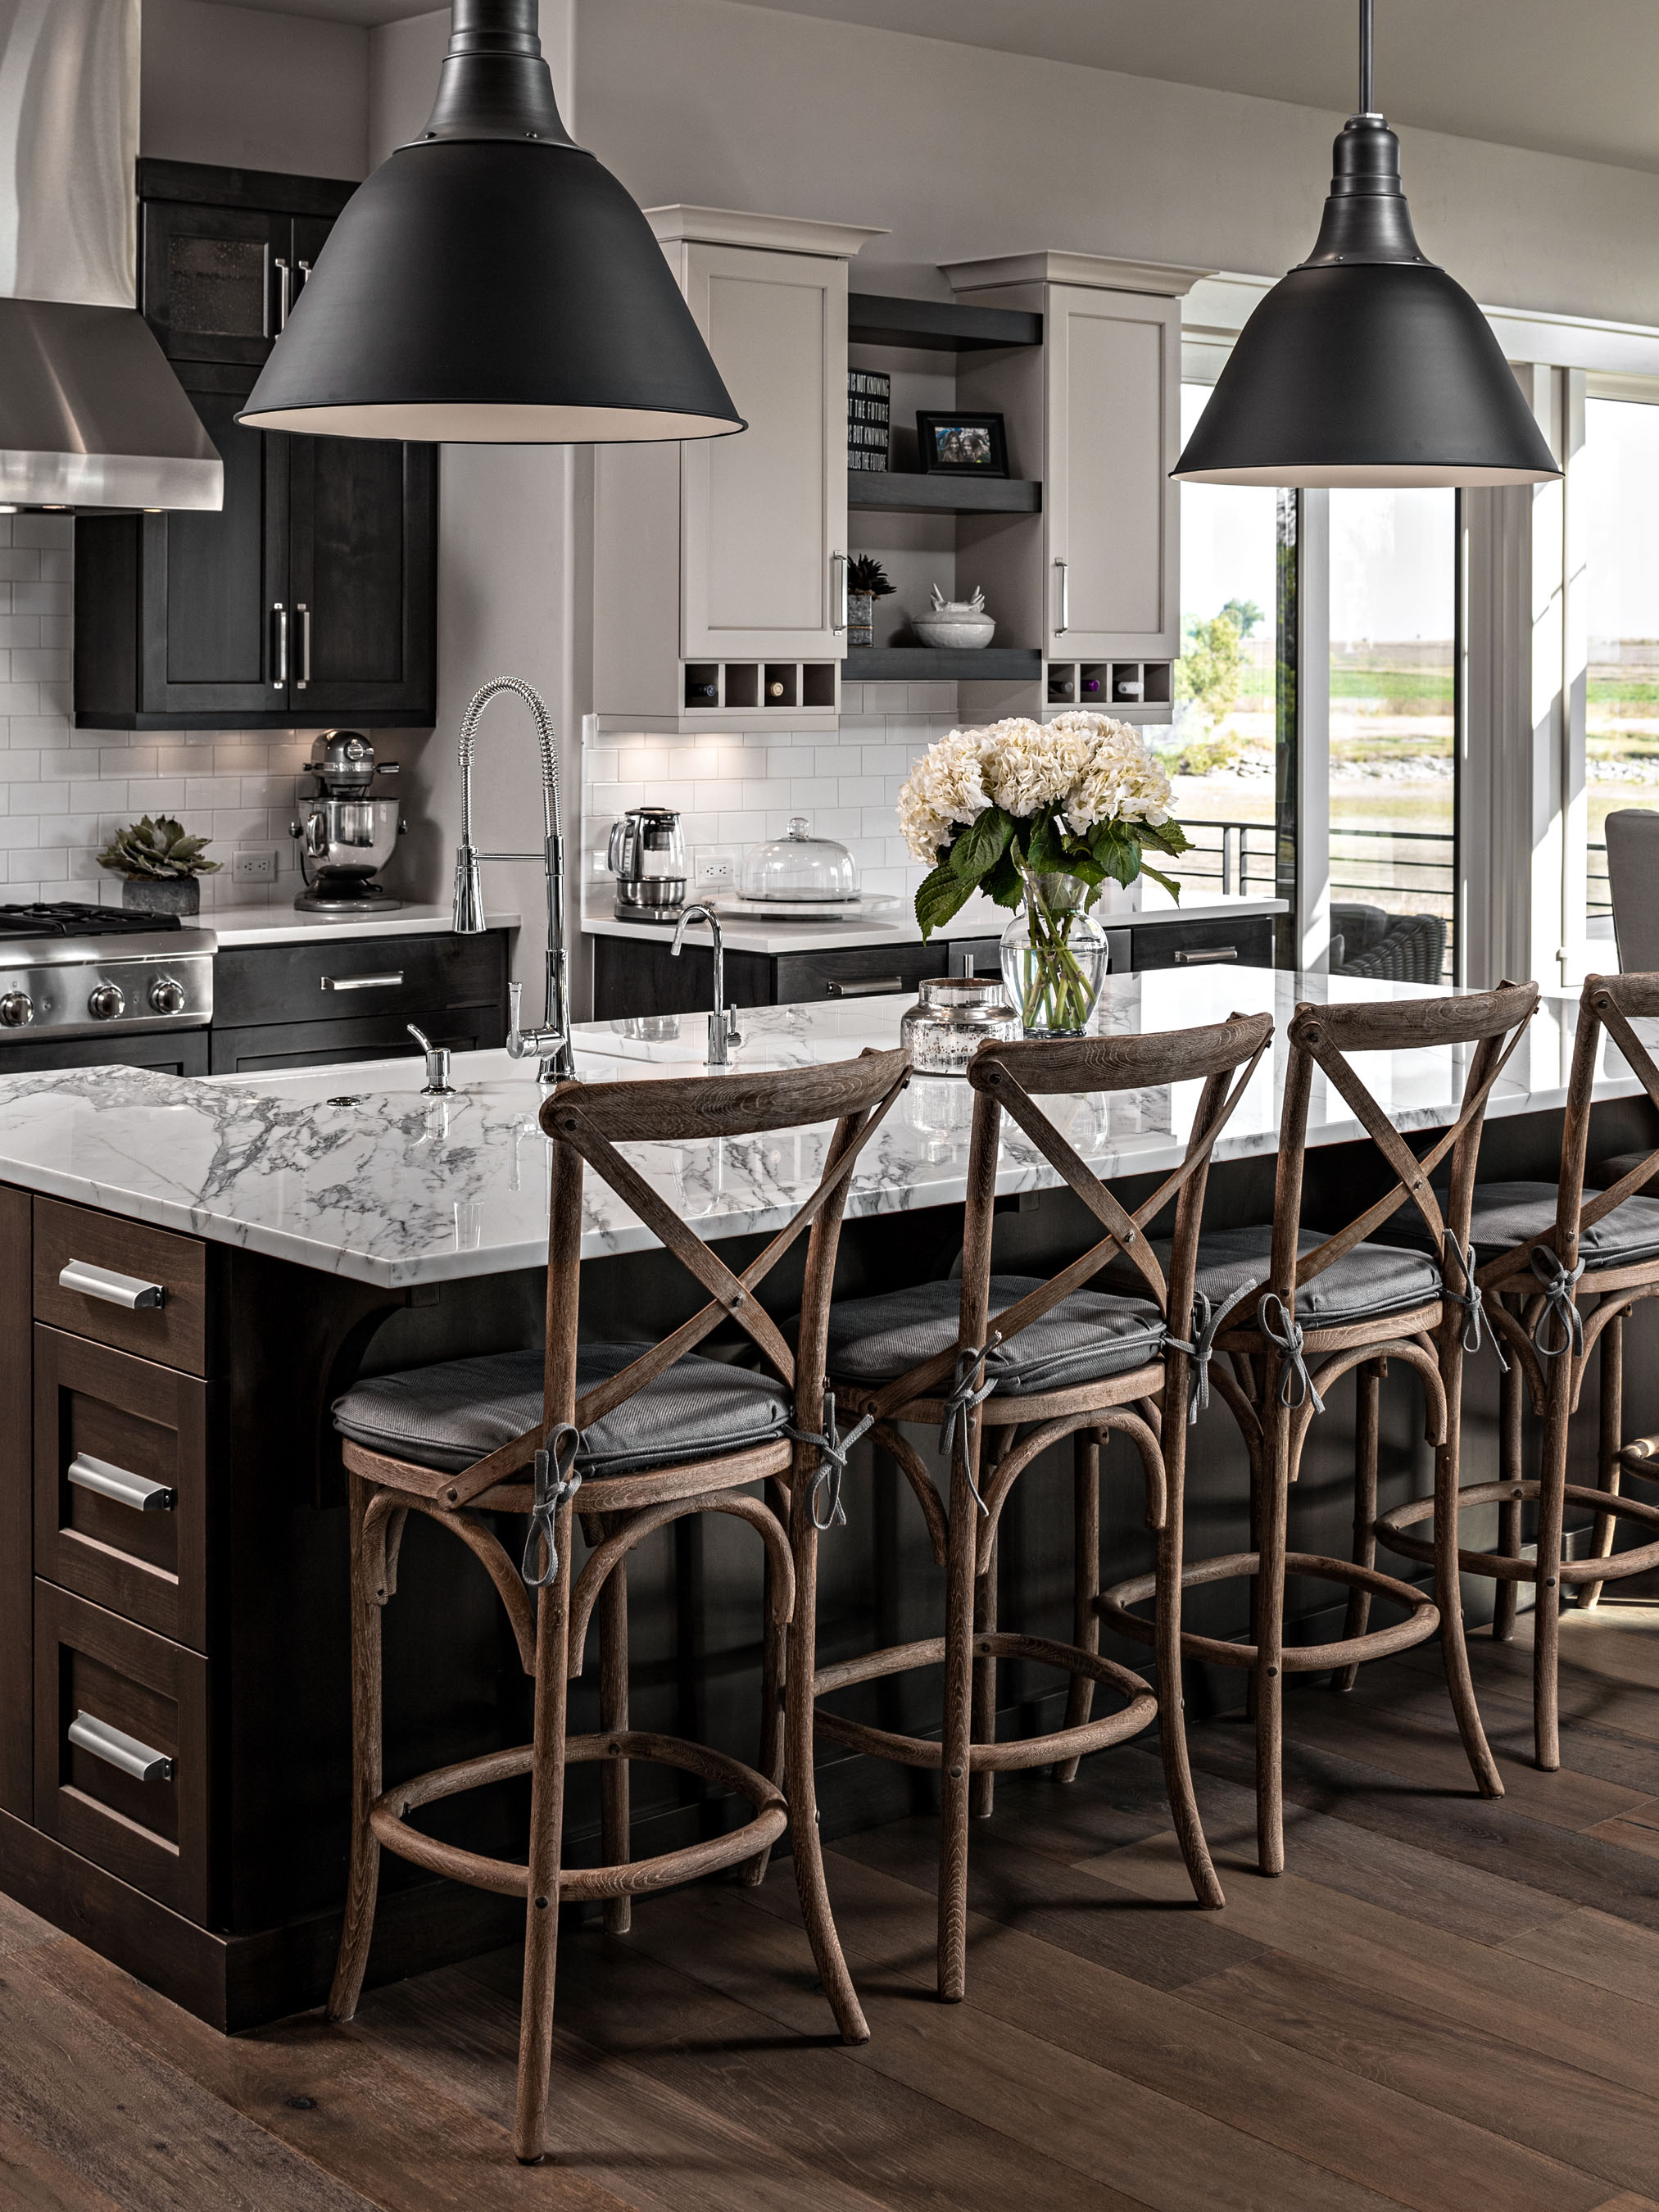 Interior photography of kitchen with big pendants–Timnath, Colorado residence located in WildWing.